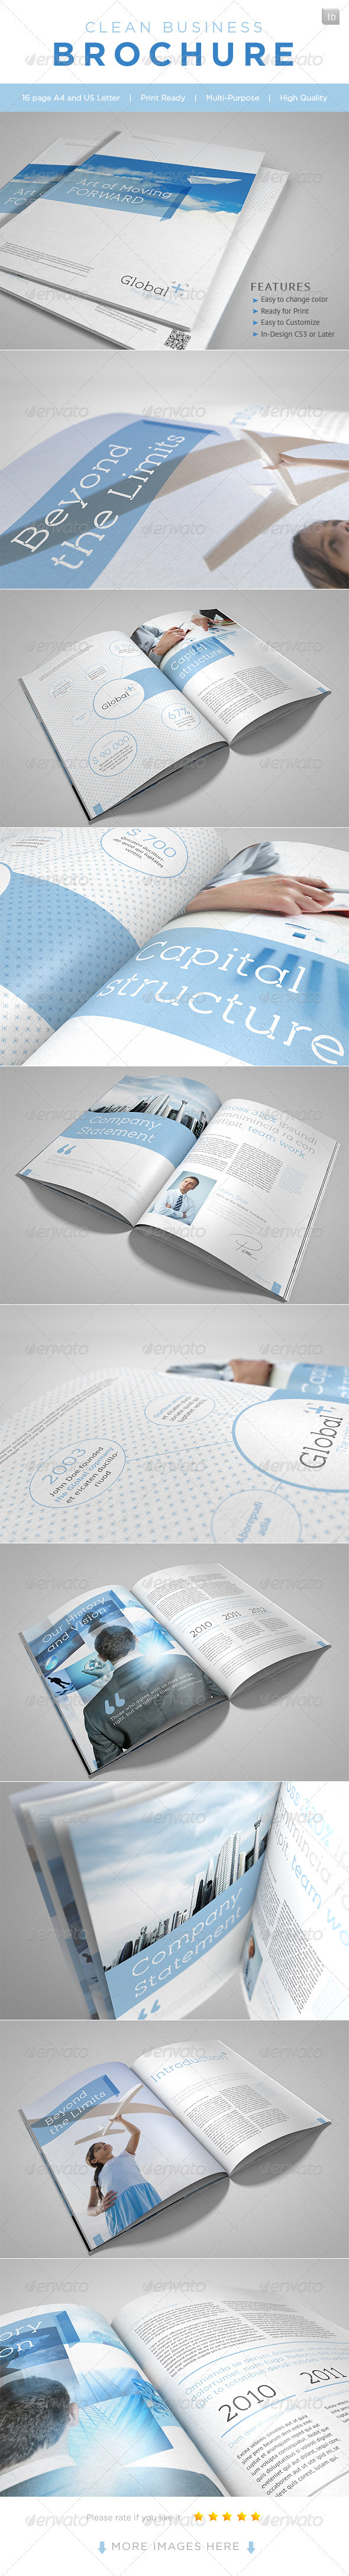 GraphicRiver Clean Business Brochure 2290611